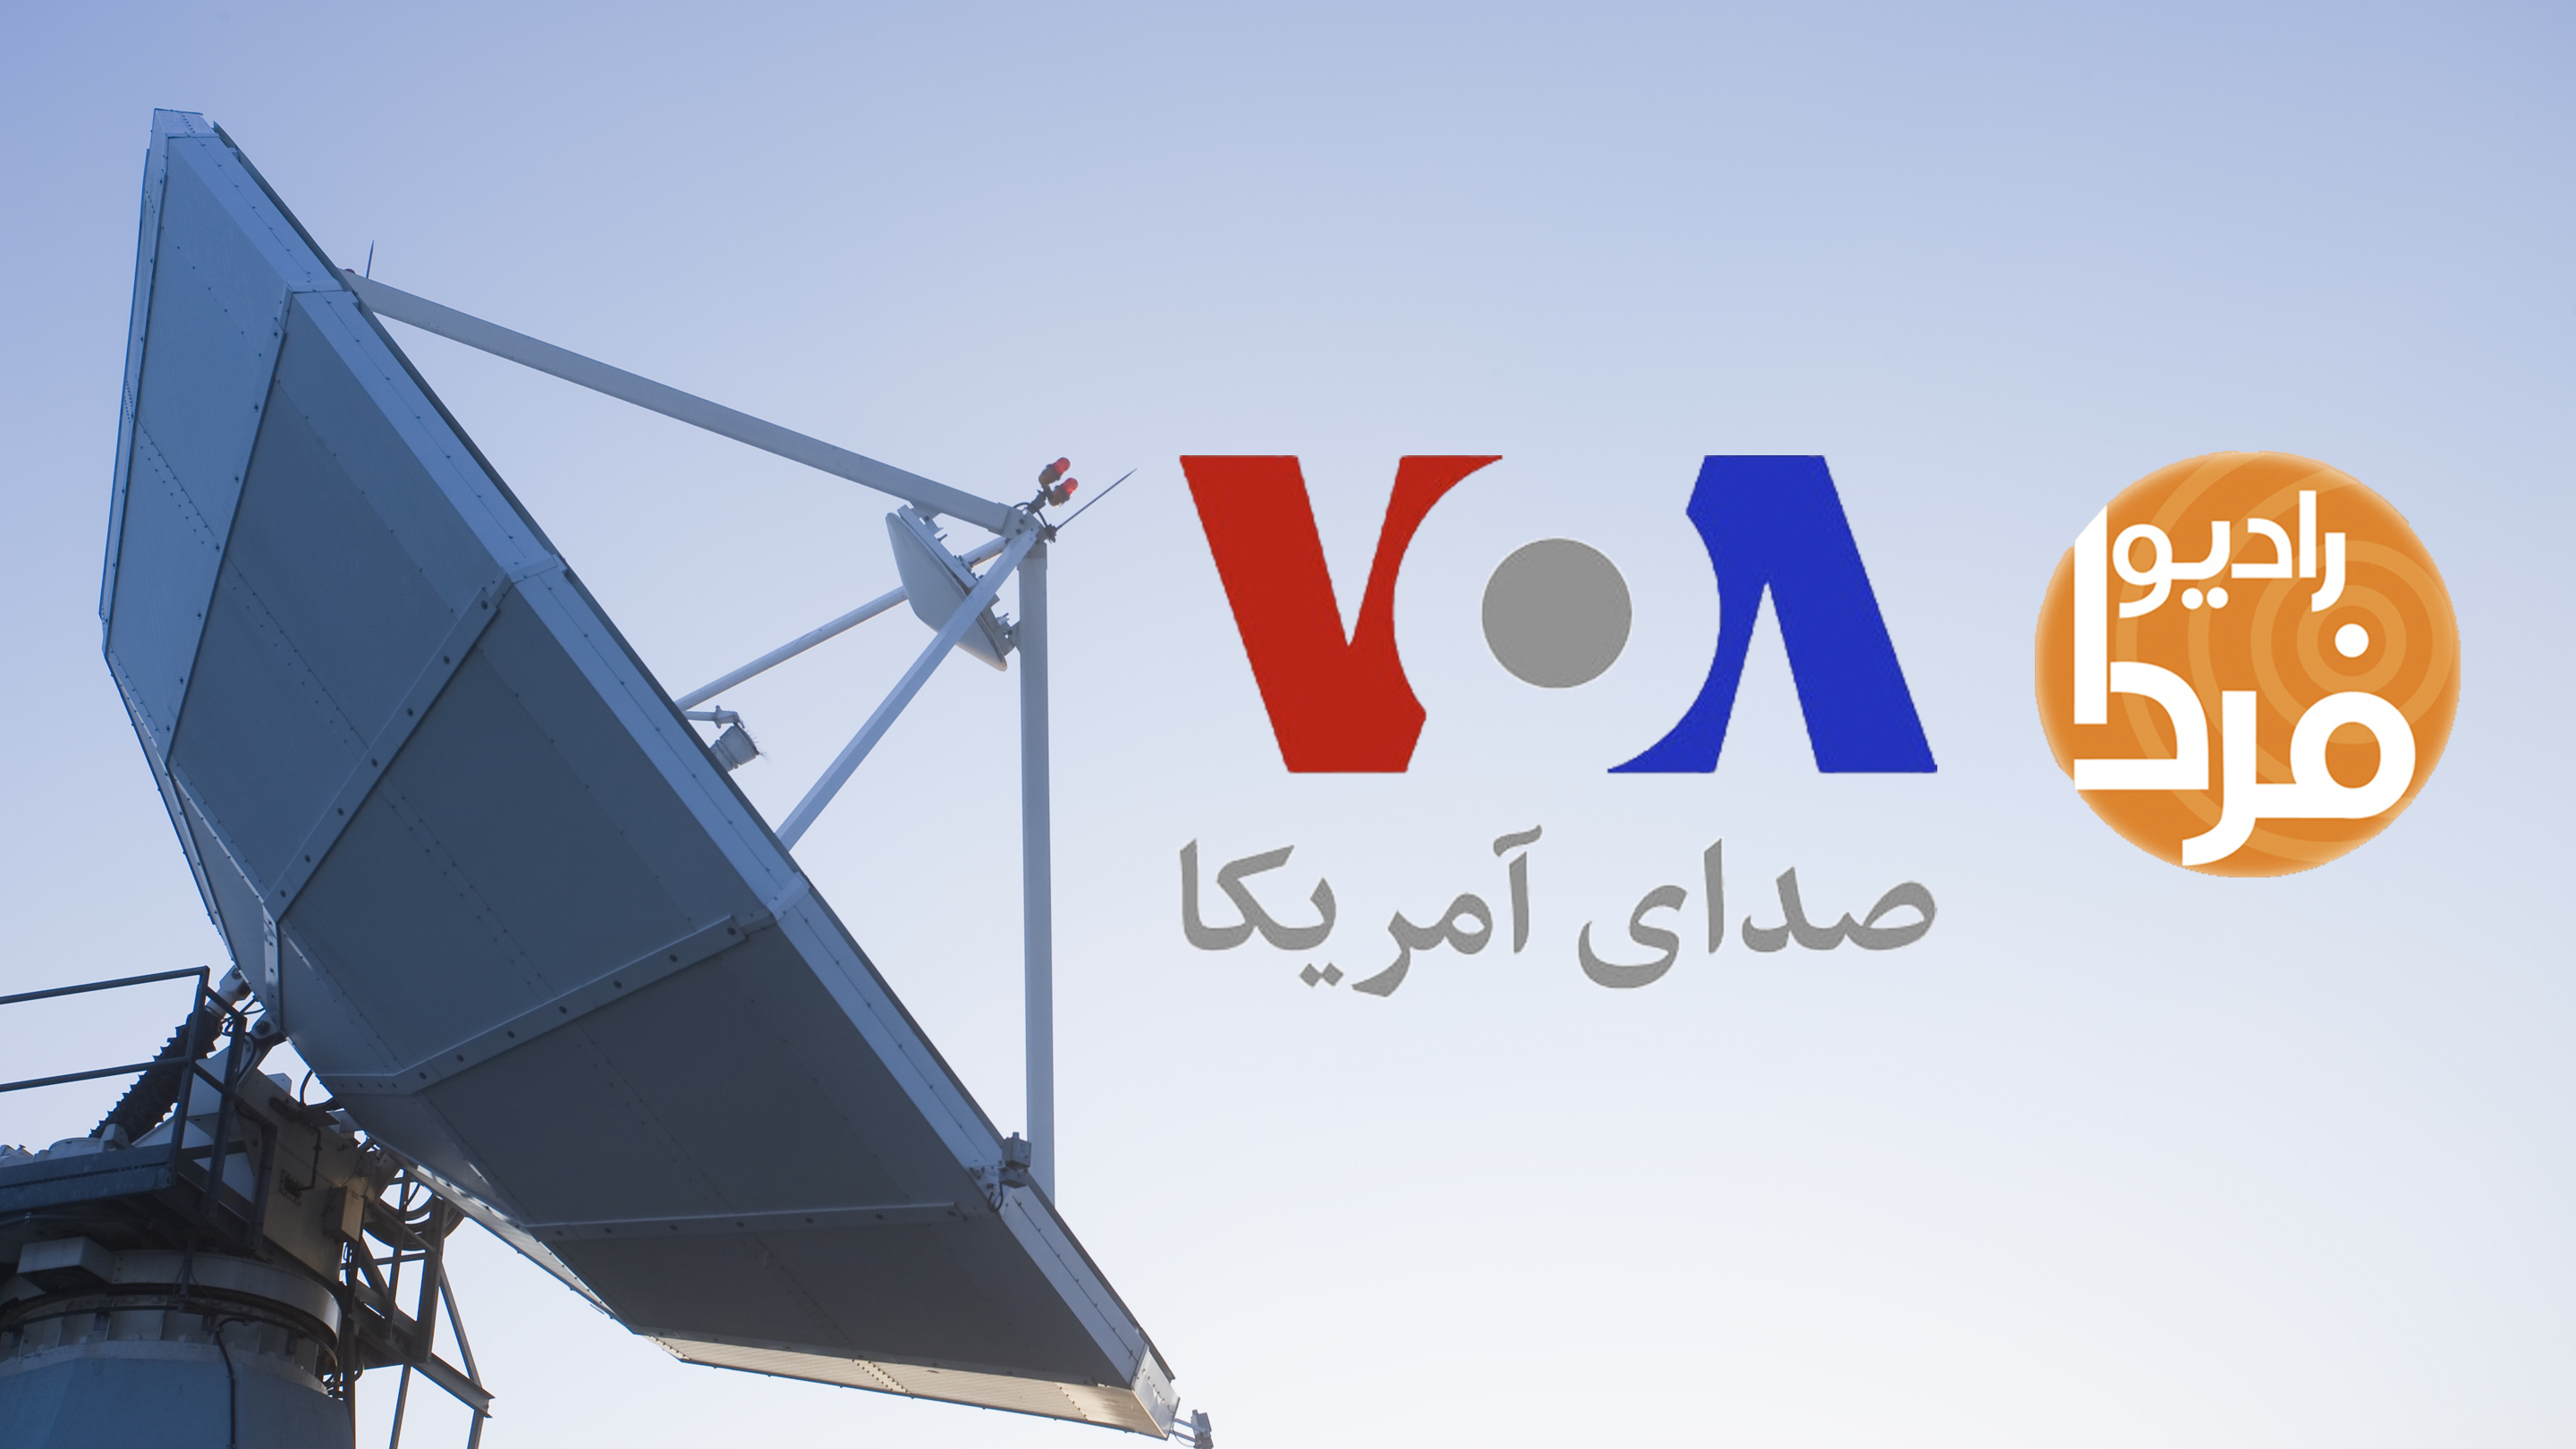 USA: Audiences in Iran Get New Breakfast Shows on VOA Satellite